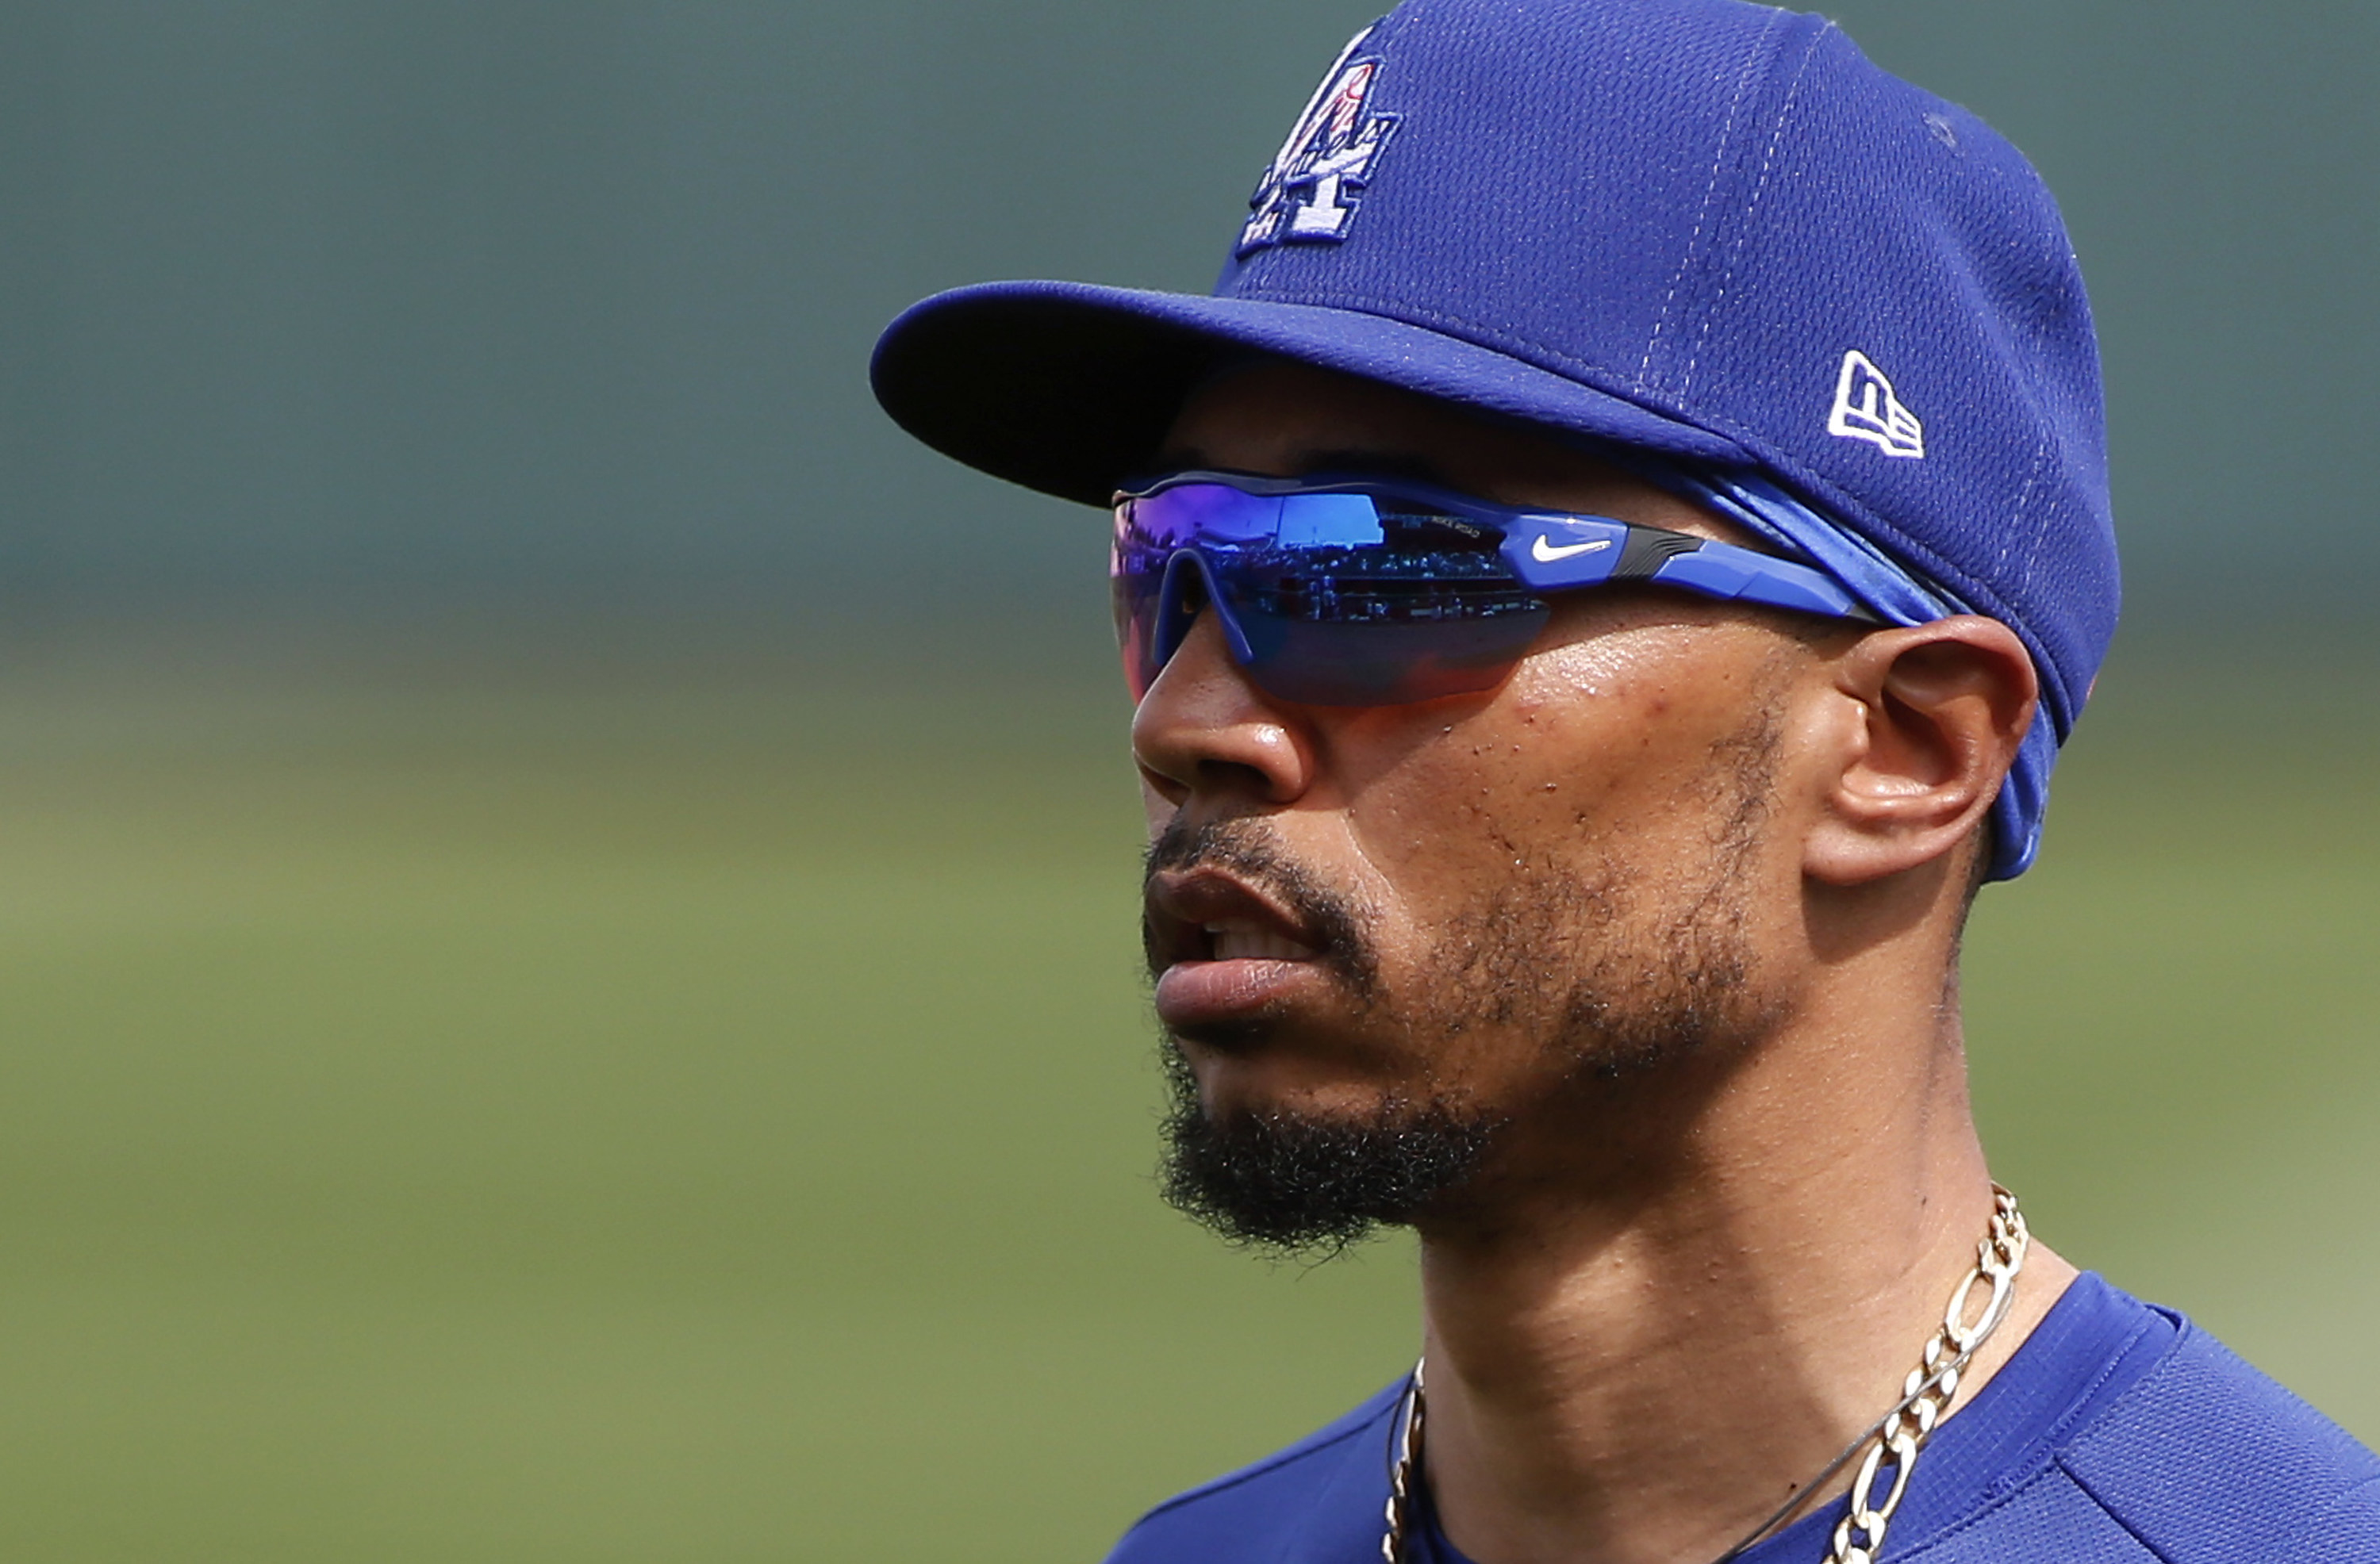 Present day Mookie Betts wearing shades and a Dodgers hat.